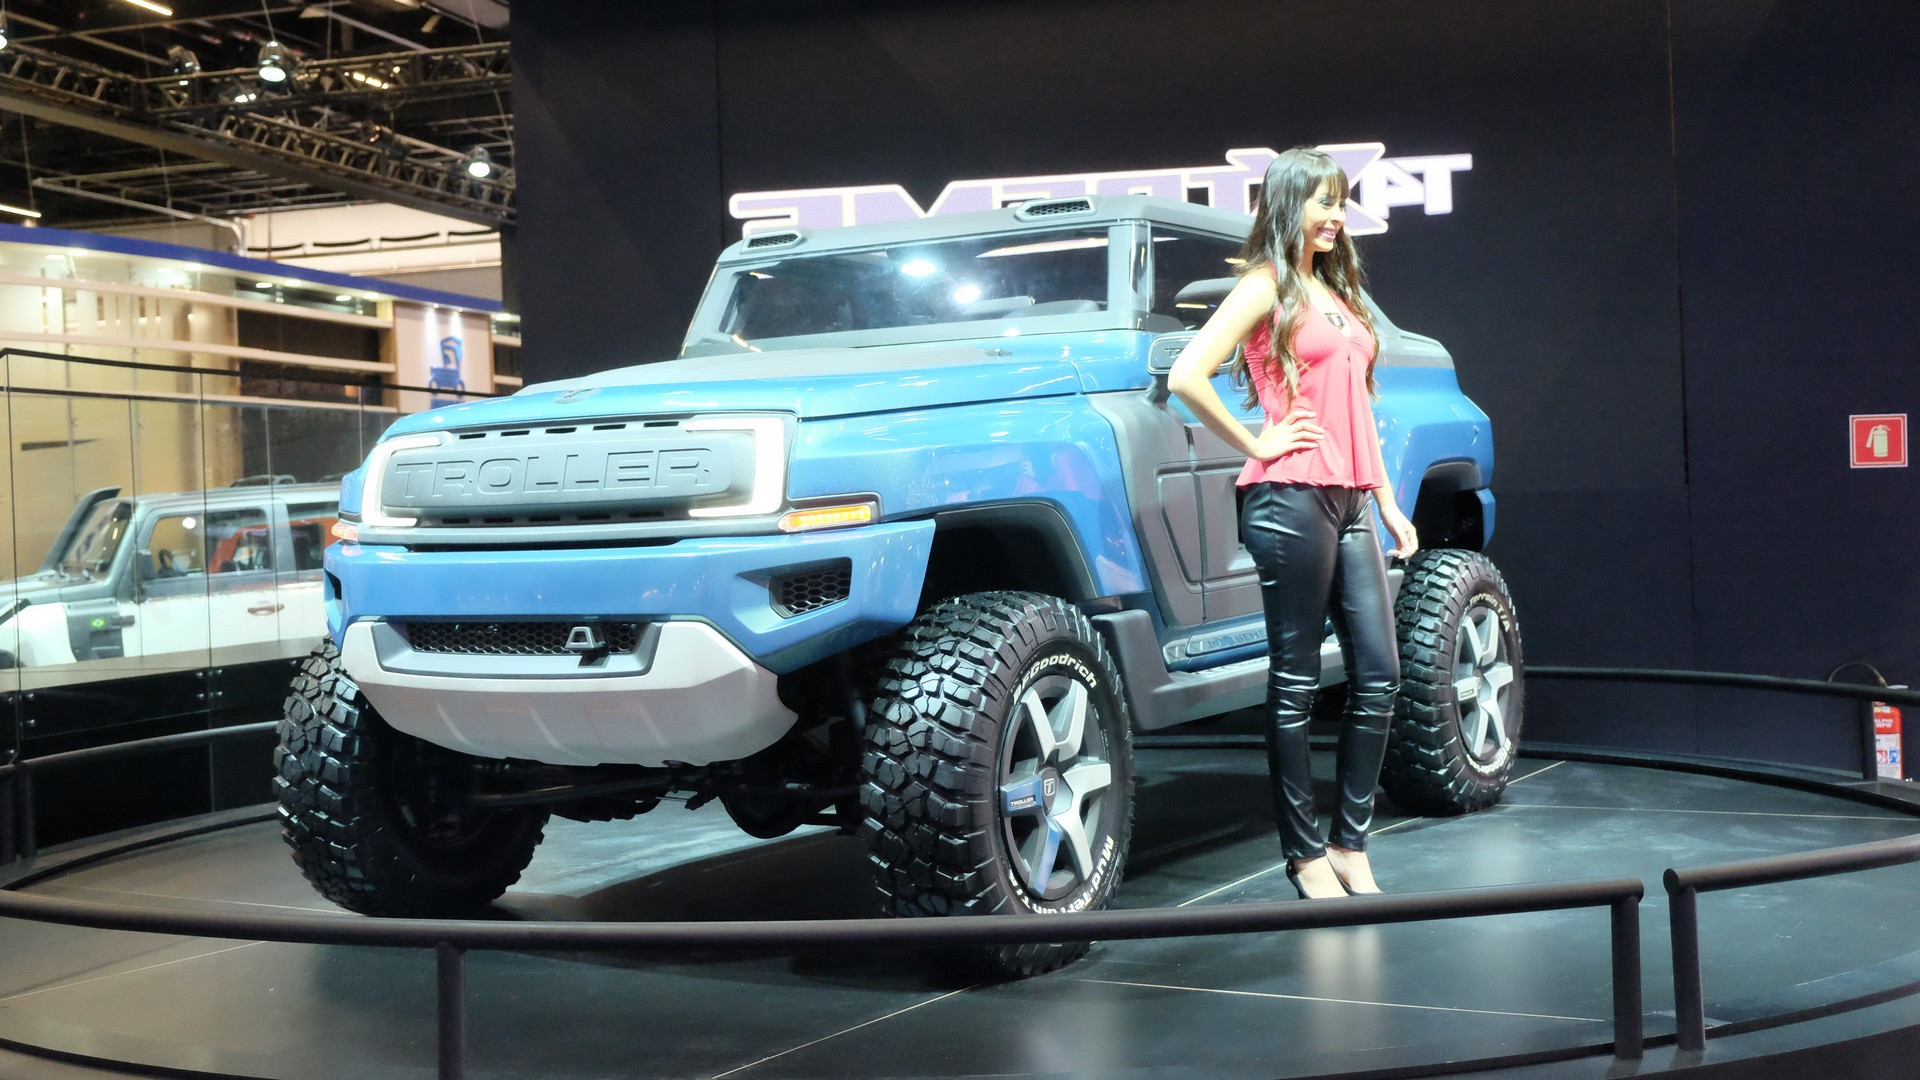 Future Cars 2018 Wallpapers Brazil S Troller T4 Xtreme Concept Envisions Possible